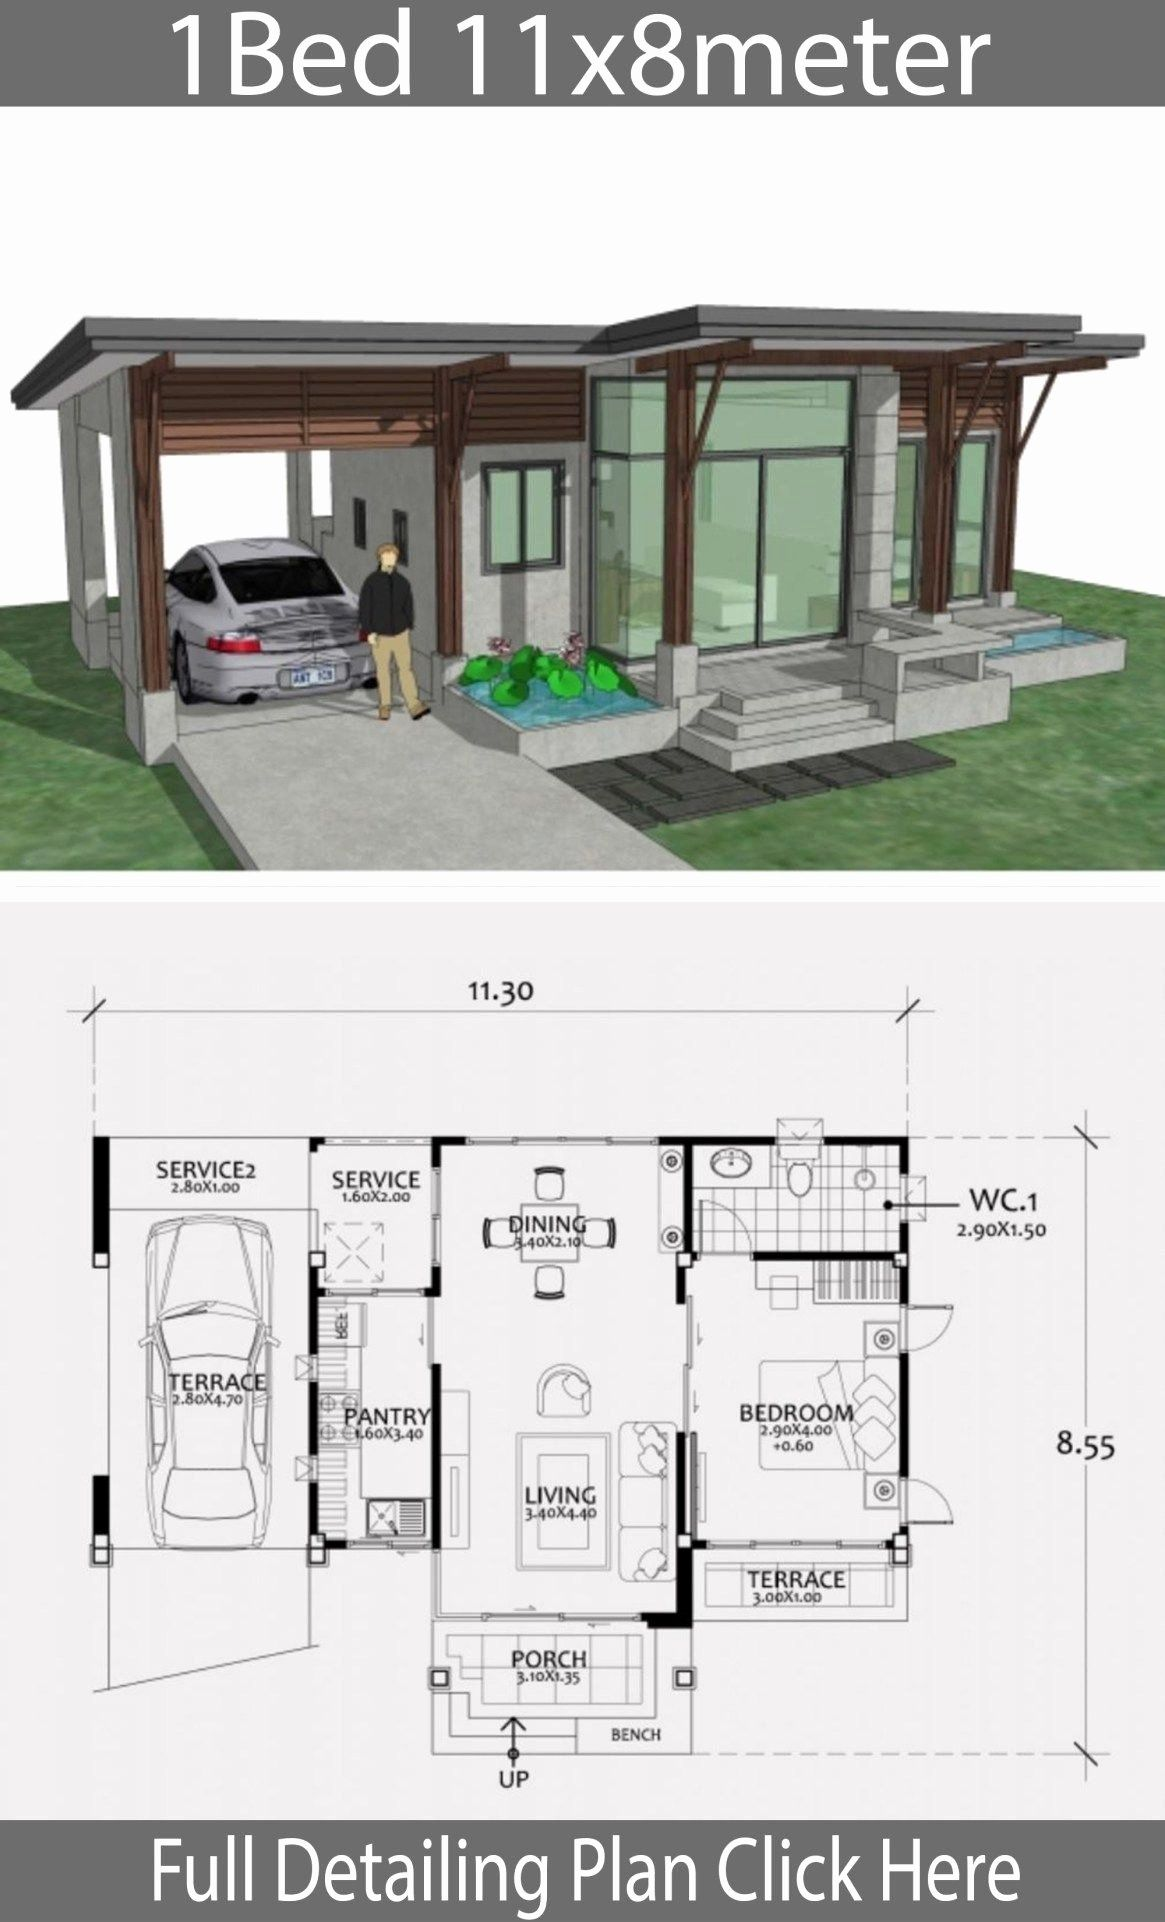 12 Small One Bedroom House Plans Homify Best In 2020 Home Design Plan House Plans One Bedroom House